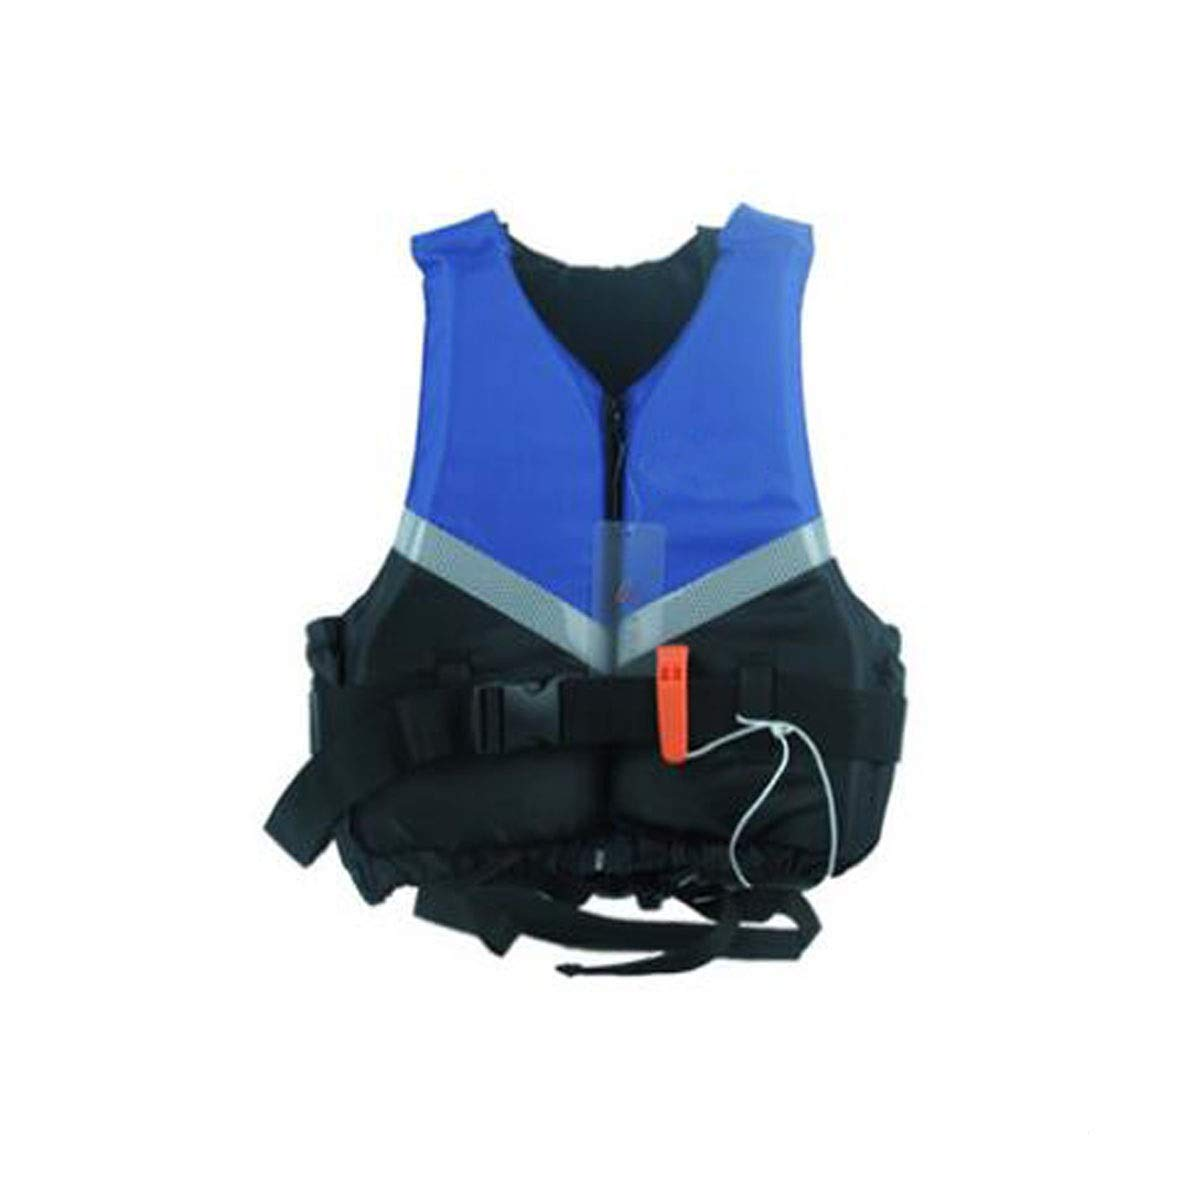 bluee Medium Youshangshipin Adult Inflatable Swimming Vest Life Jacket for Snorkeling, Outdoor Play, Surfing, Size  L, M, S, XL, color  Black, bluee, R Wear Resistant